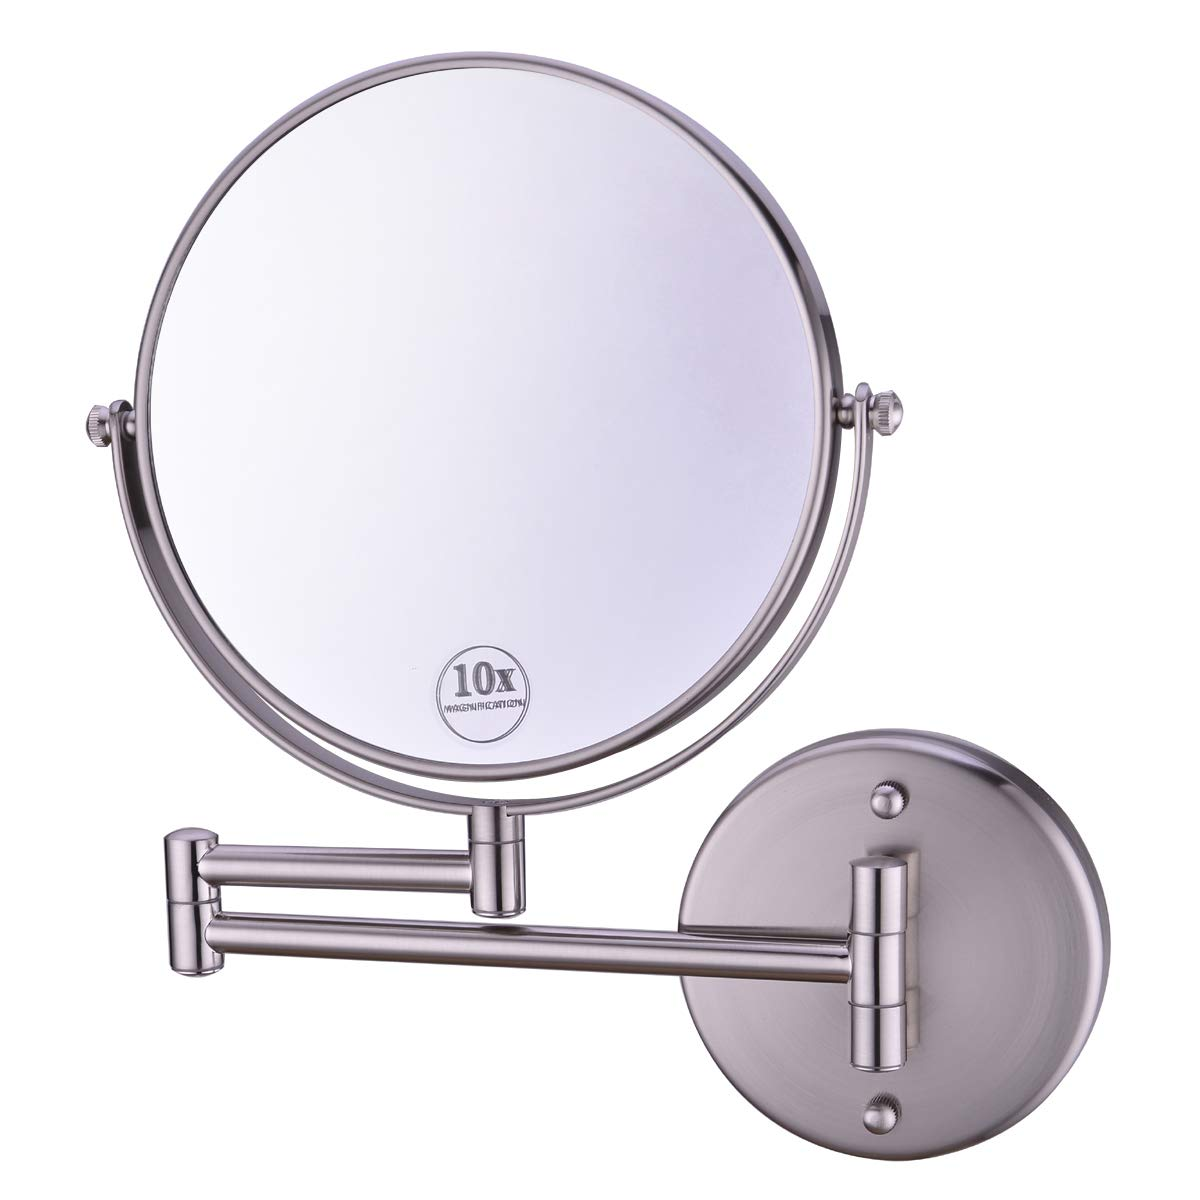 Anpean Wall Mounted Makeup Mirror 10x Magnification with 8 Inch Two Sided Swivel, Brushed Nickel